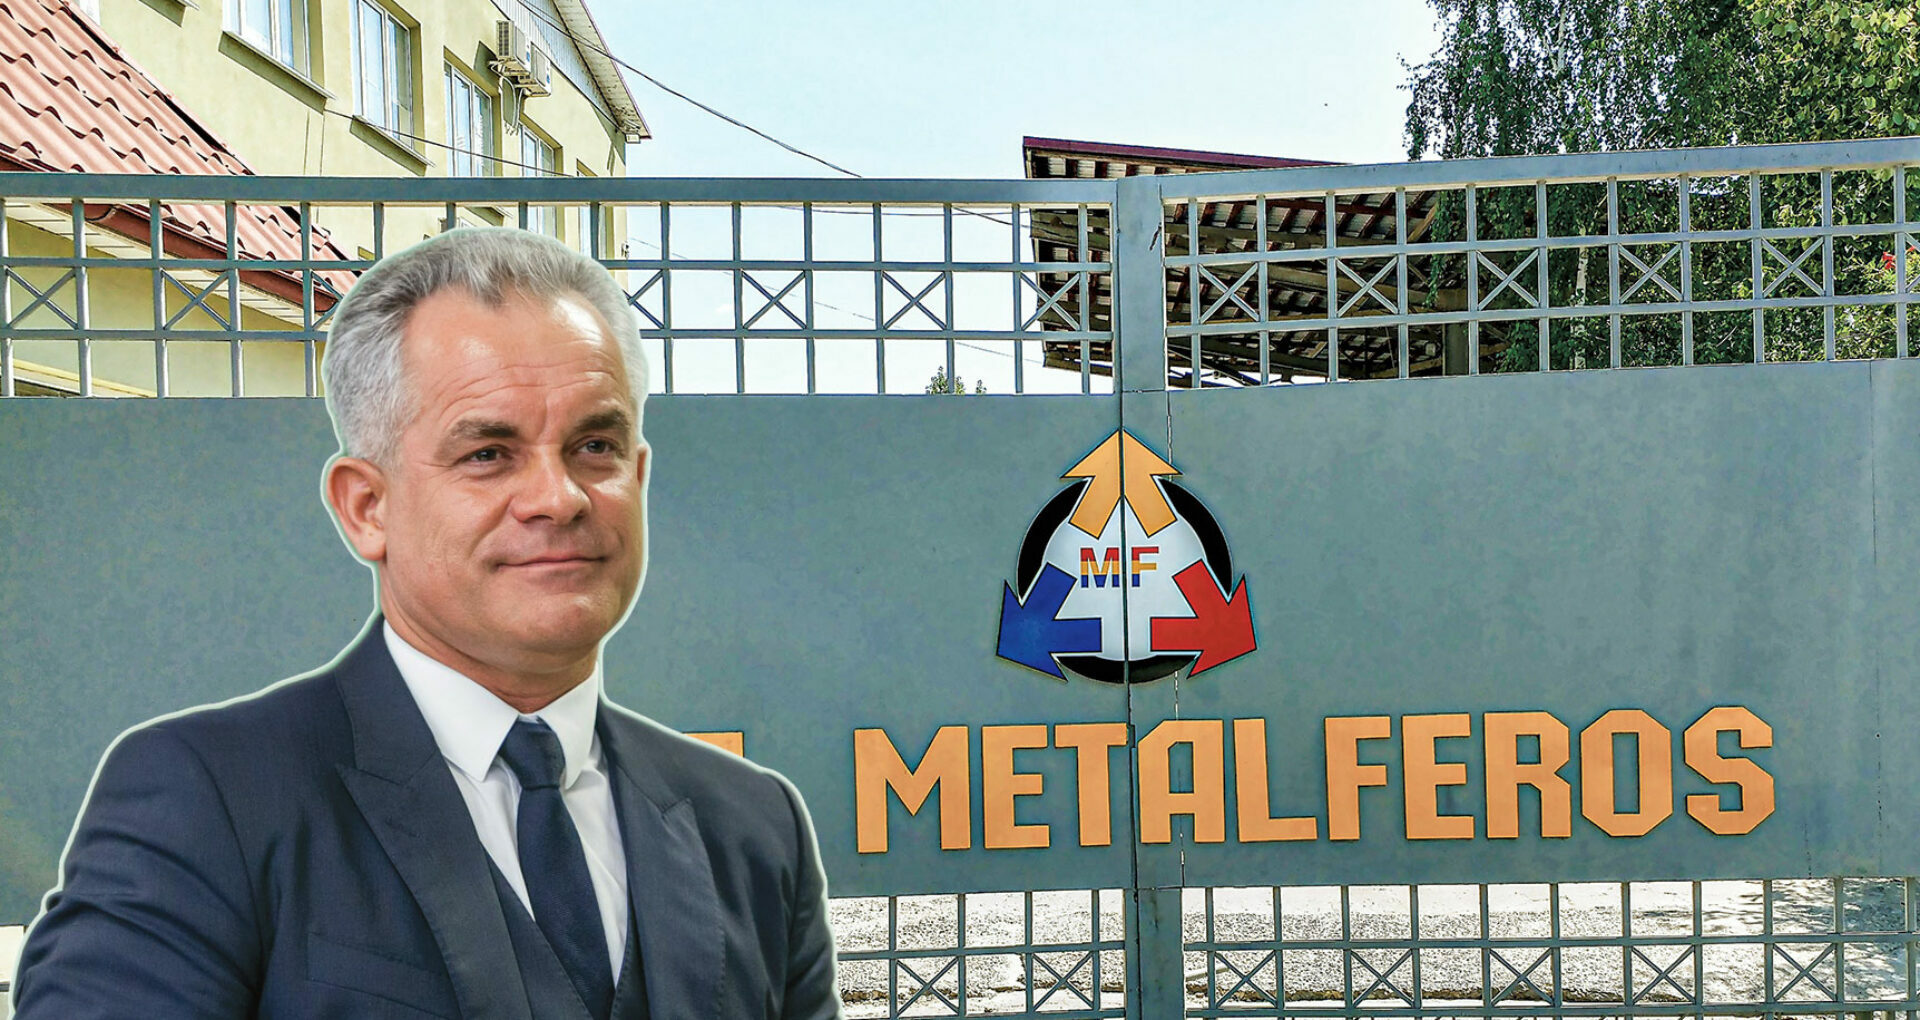 Prosecutors Confirm Vladimir Plahotniuc's Involvement in Metalferos Case